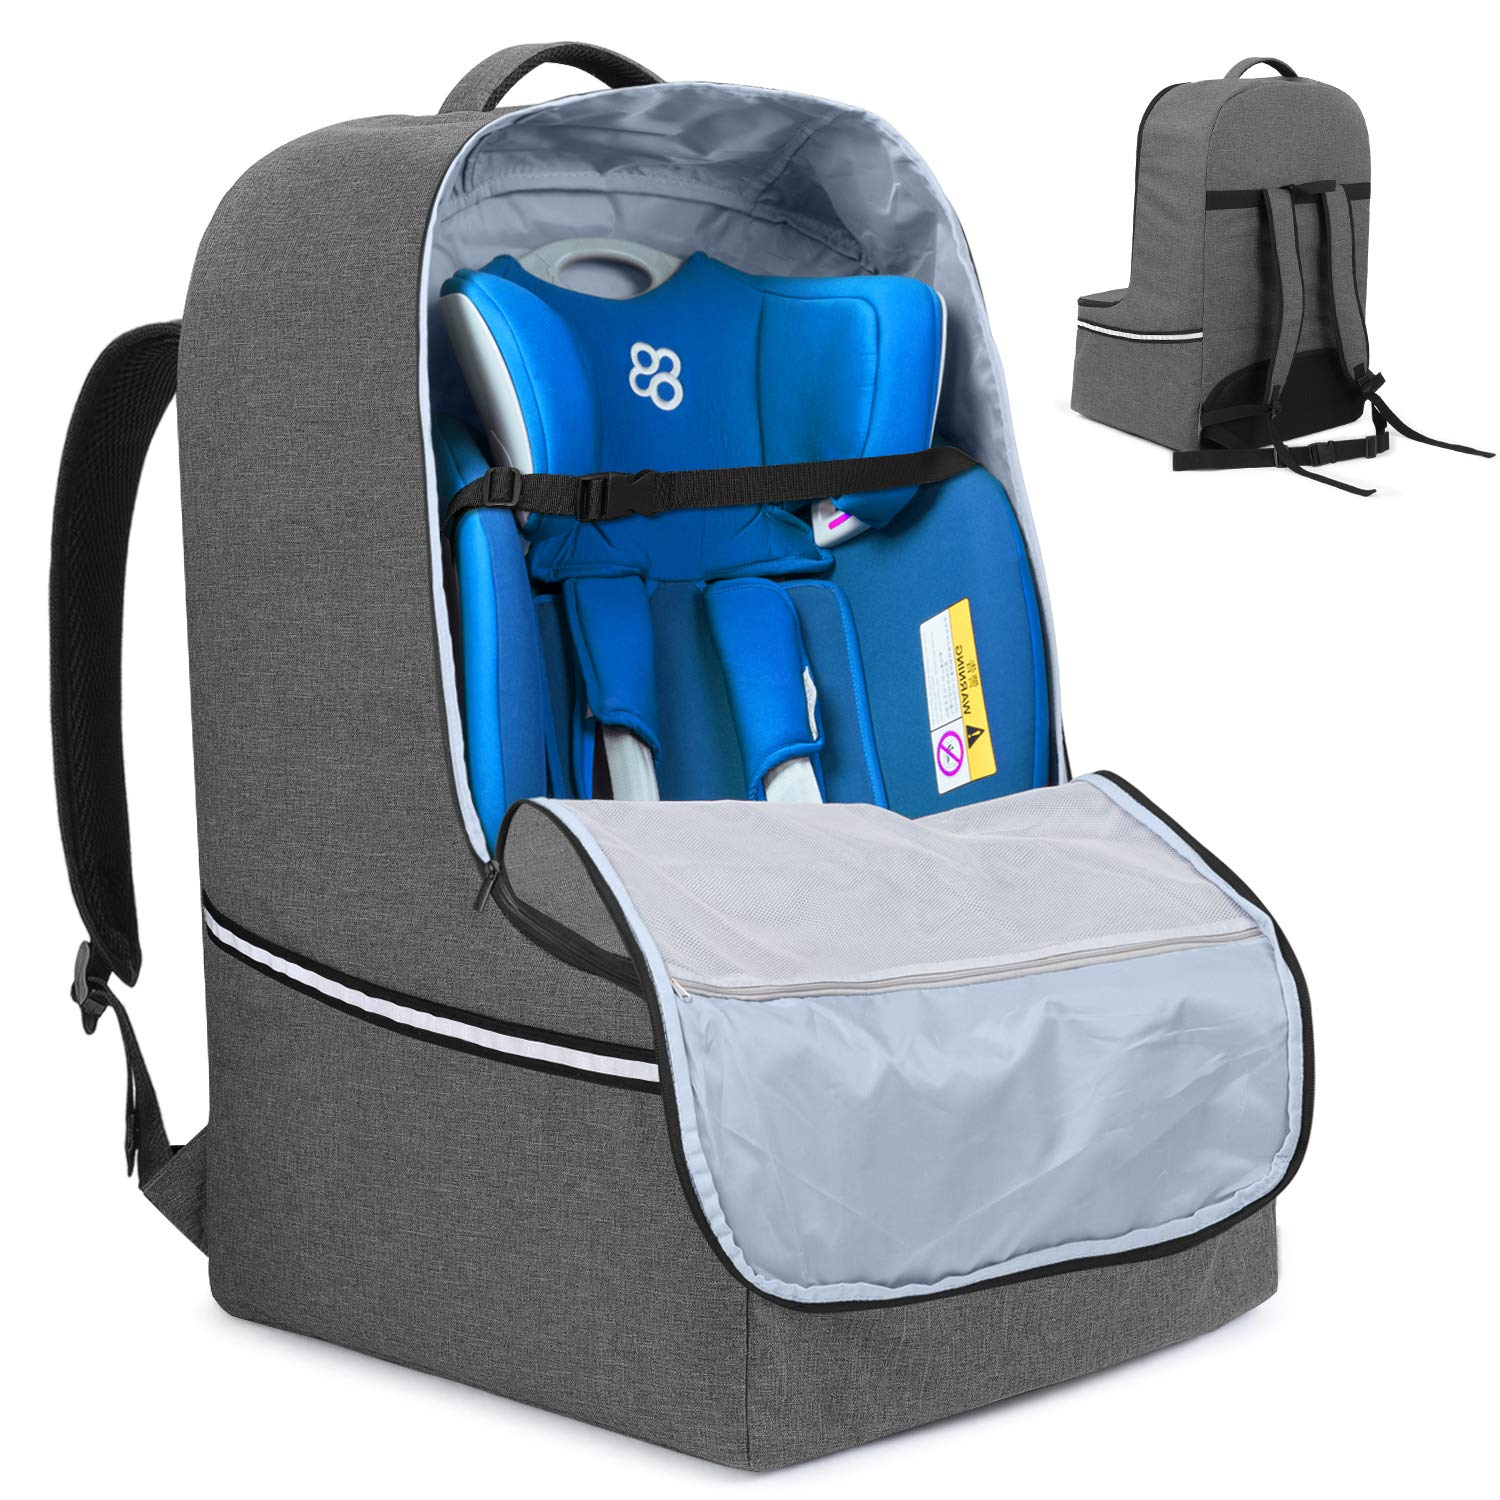 Teamoy Car Seat Travel Bag, Car Seat Gate Check Bag with Top Handle and Reflective Tapes, Infant Carseat Carrier Covers for Airplane, Gray